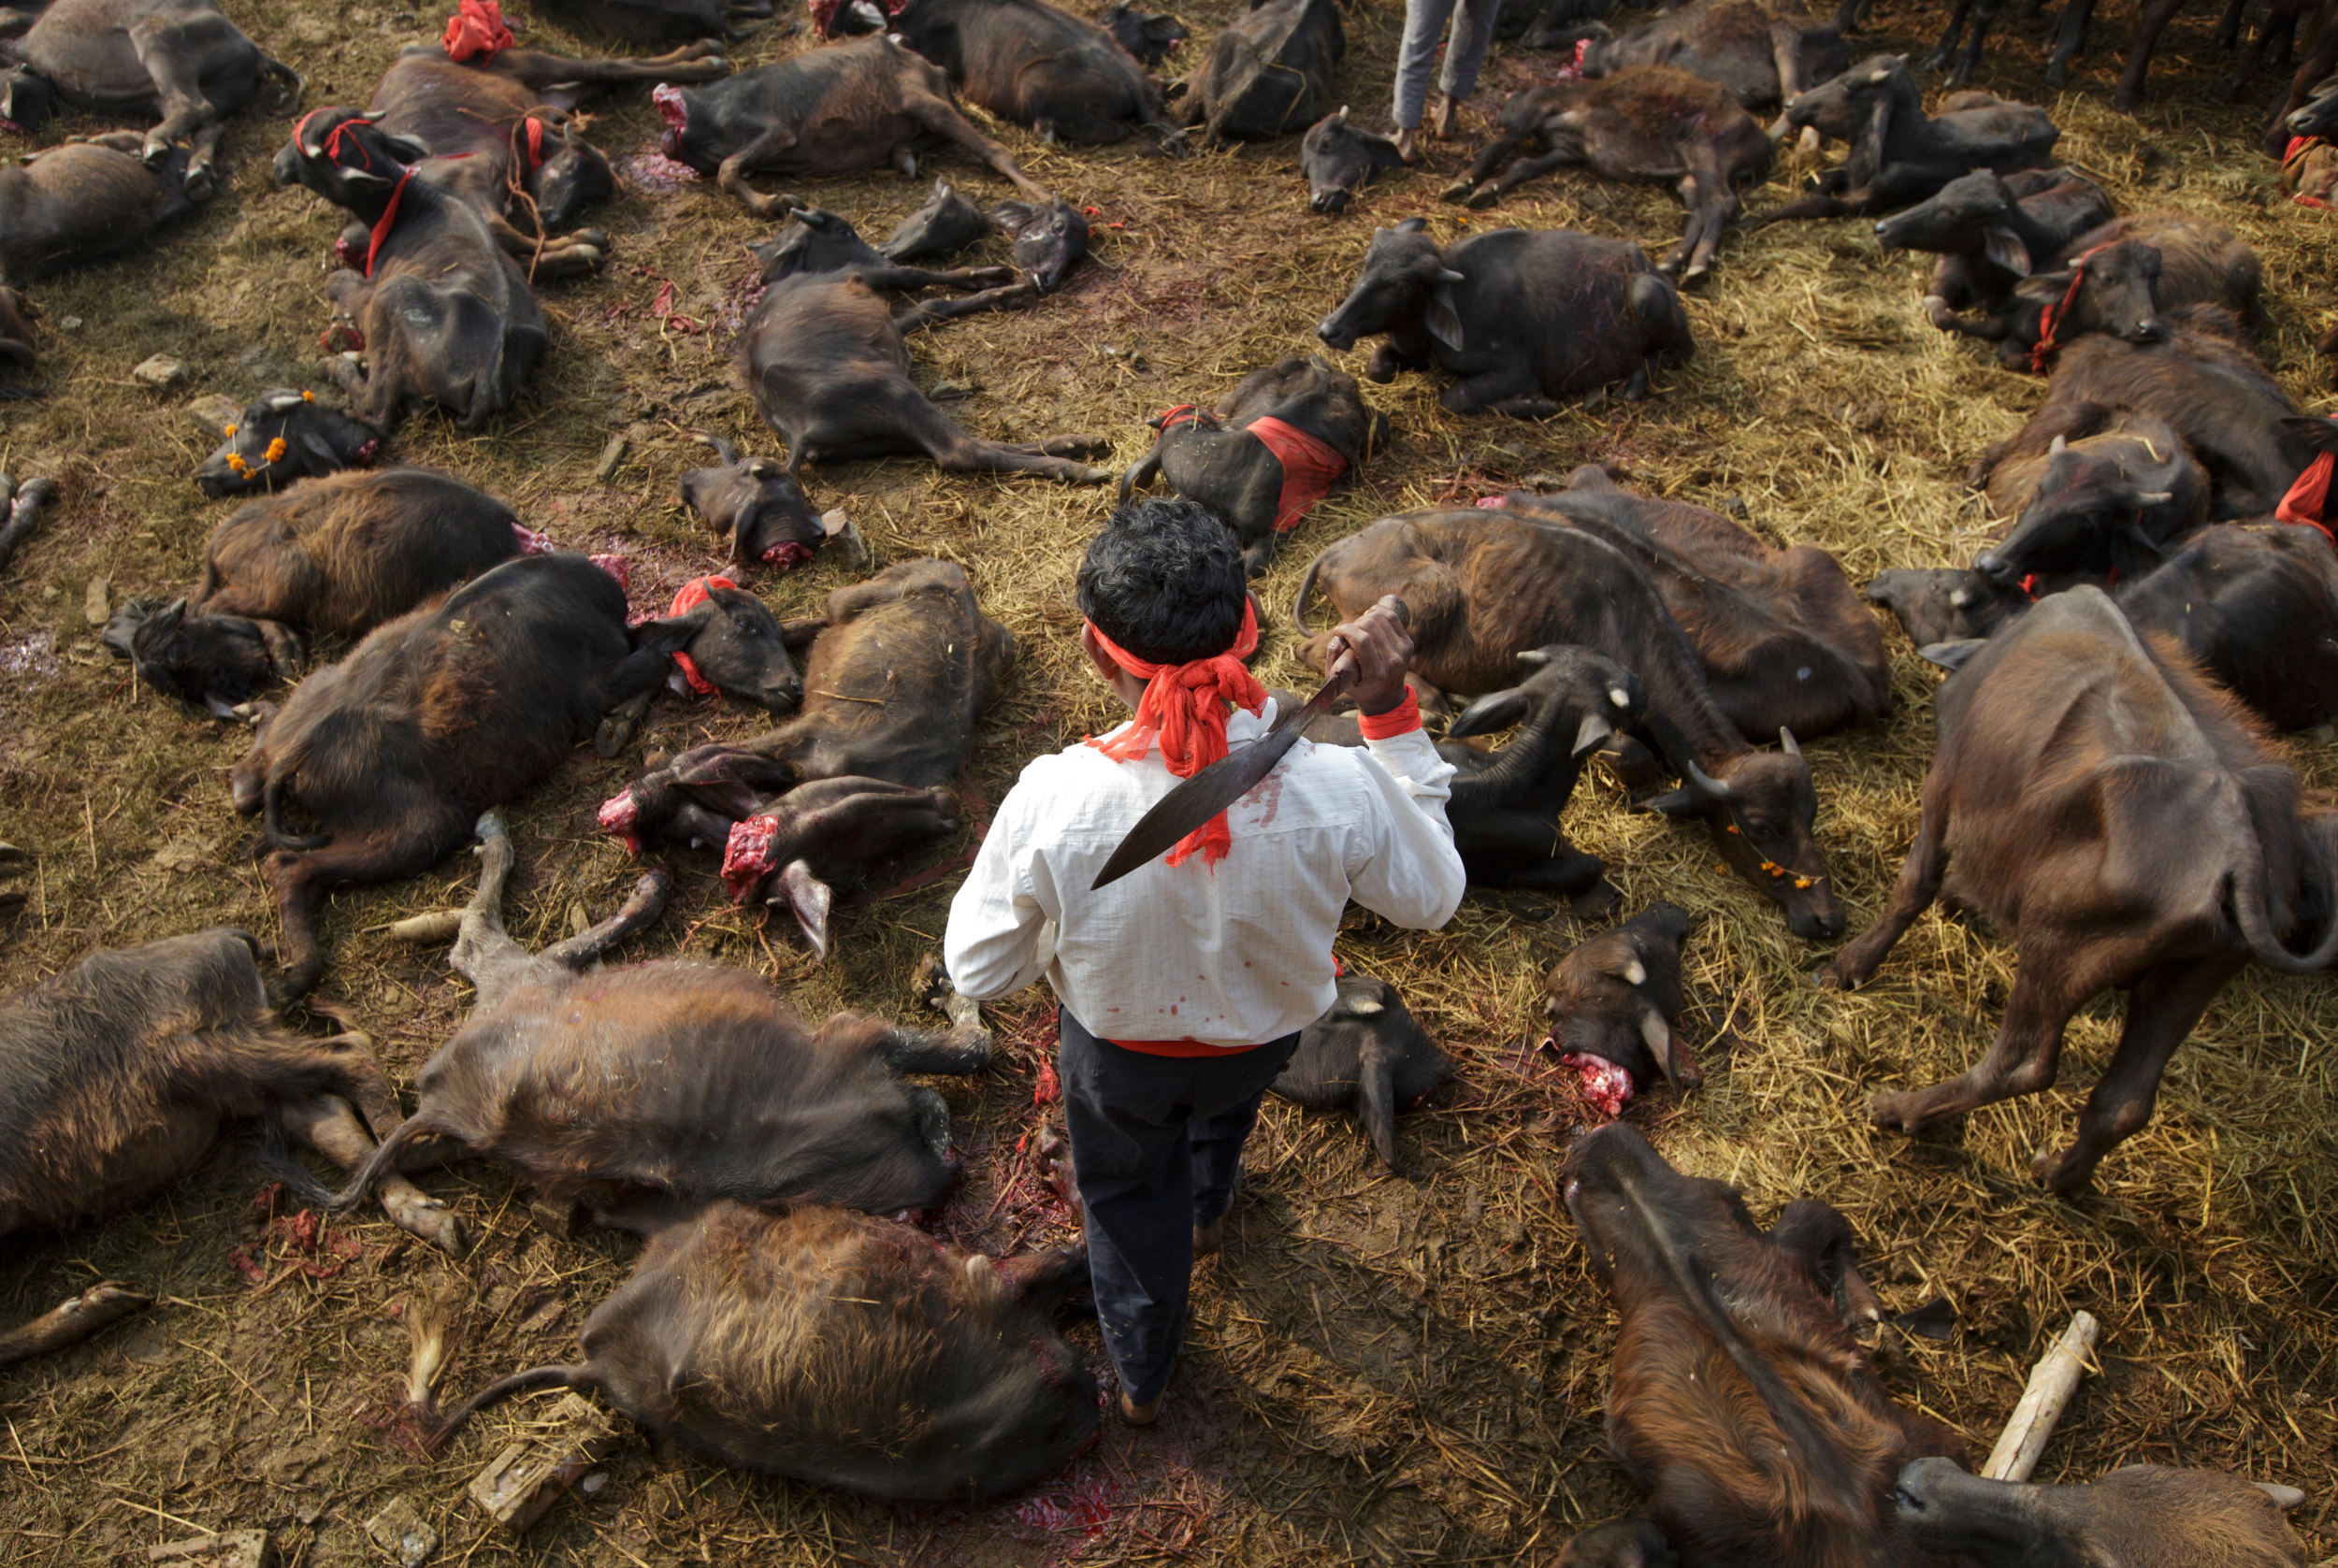 Gadhimai deaths